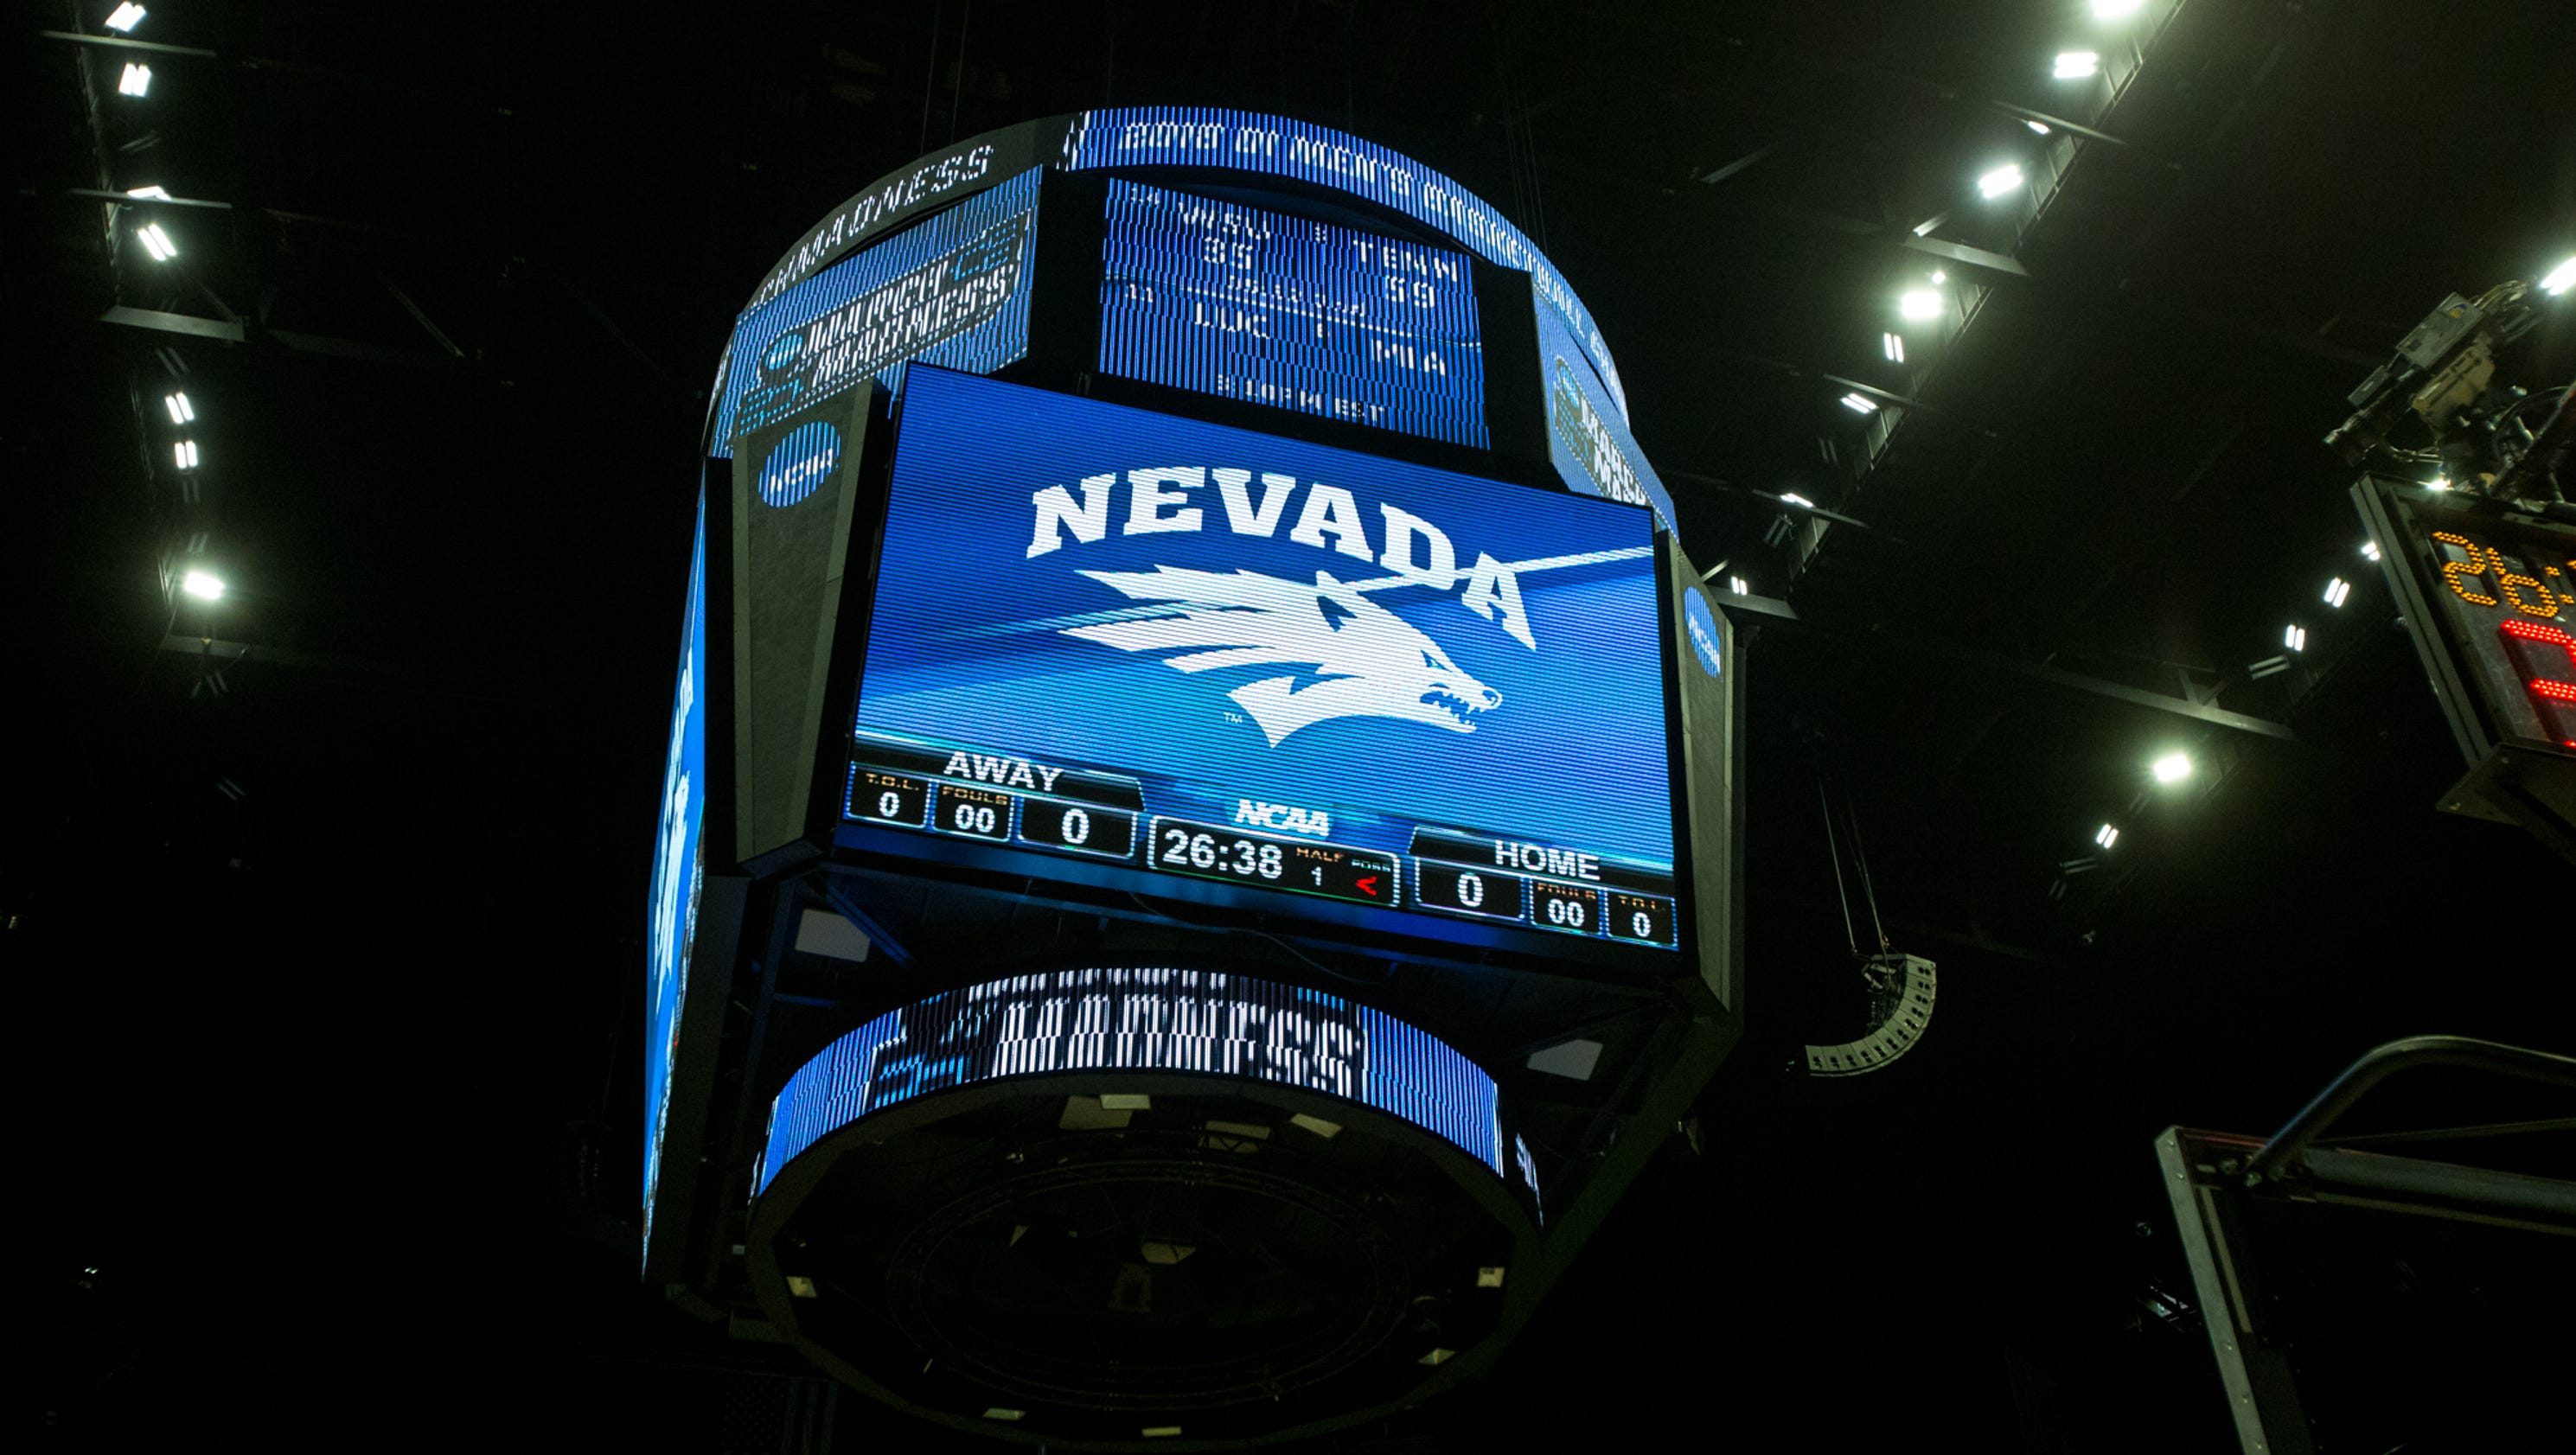 Nevada-Texas: Live updates from the NCAA Tournament